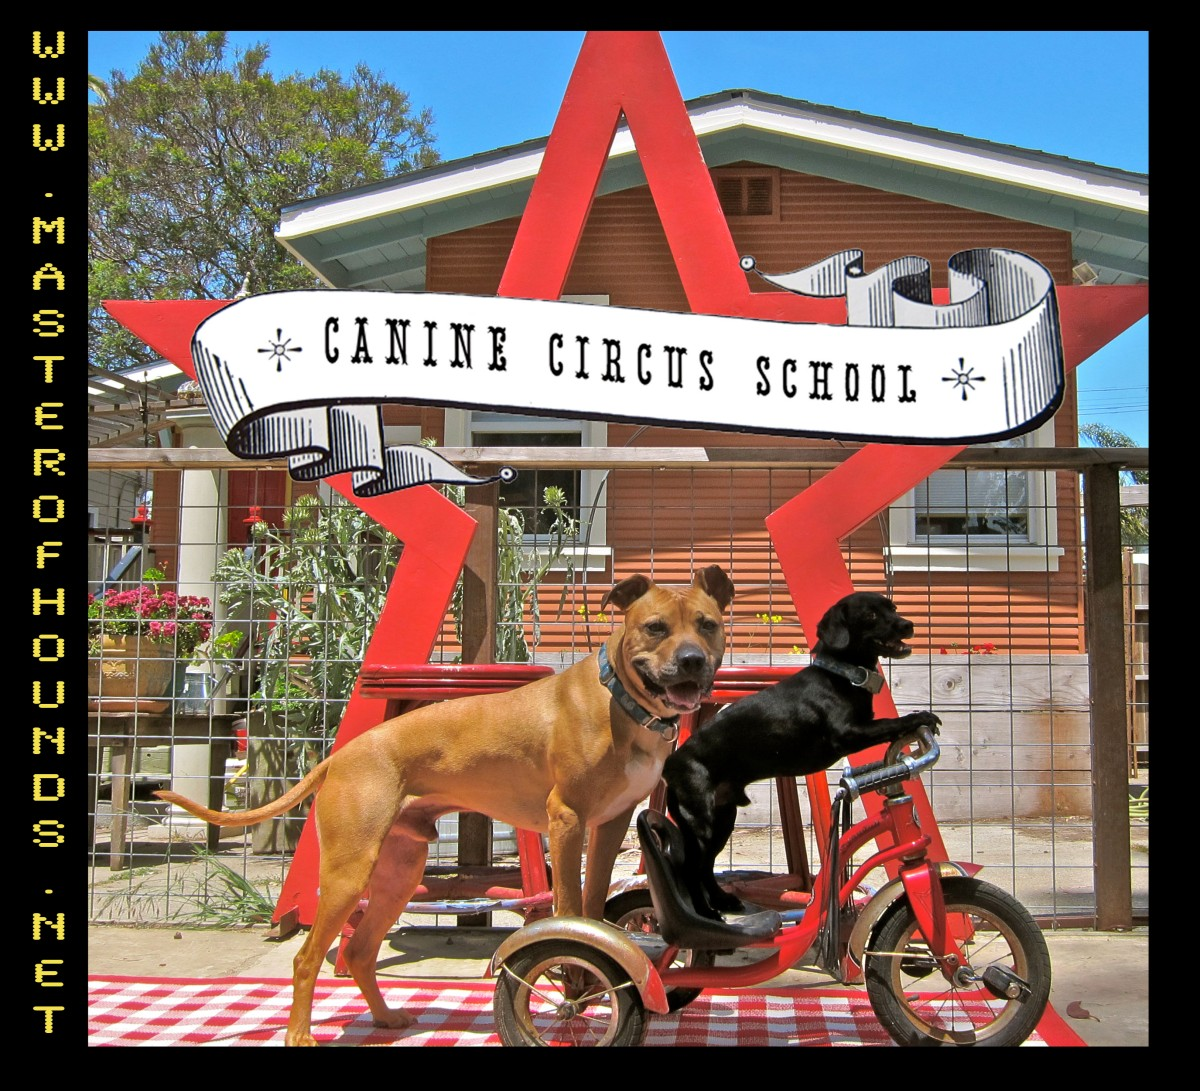 circus school on bike